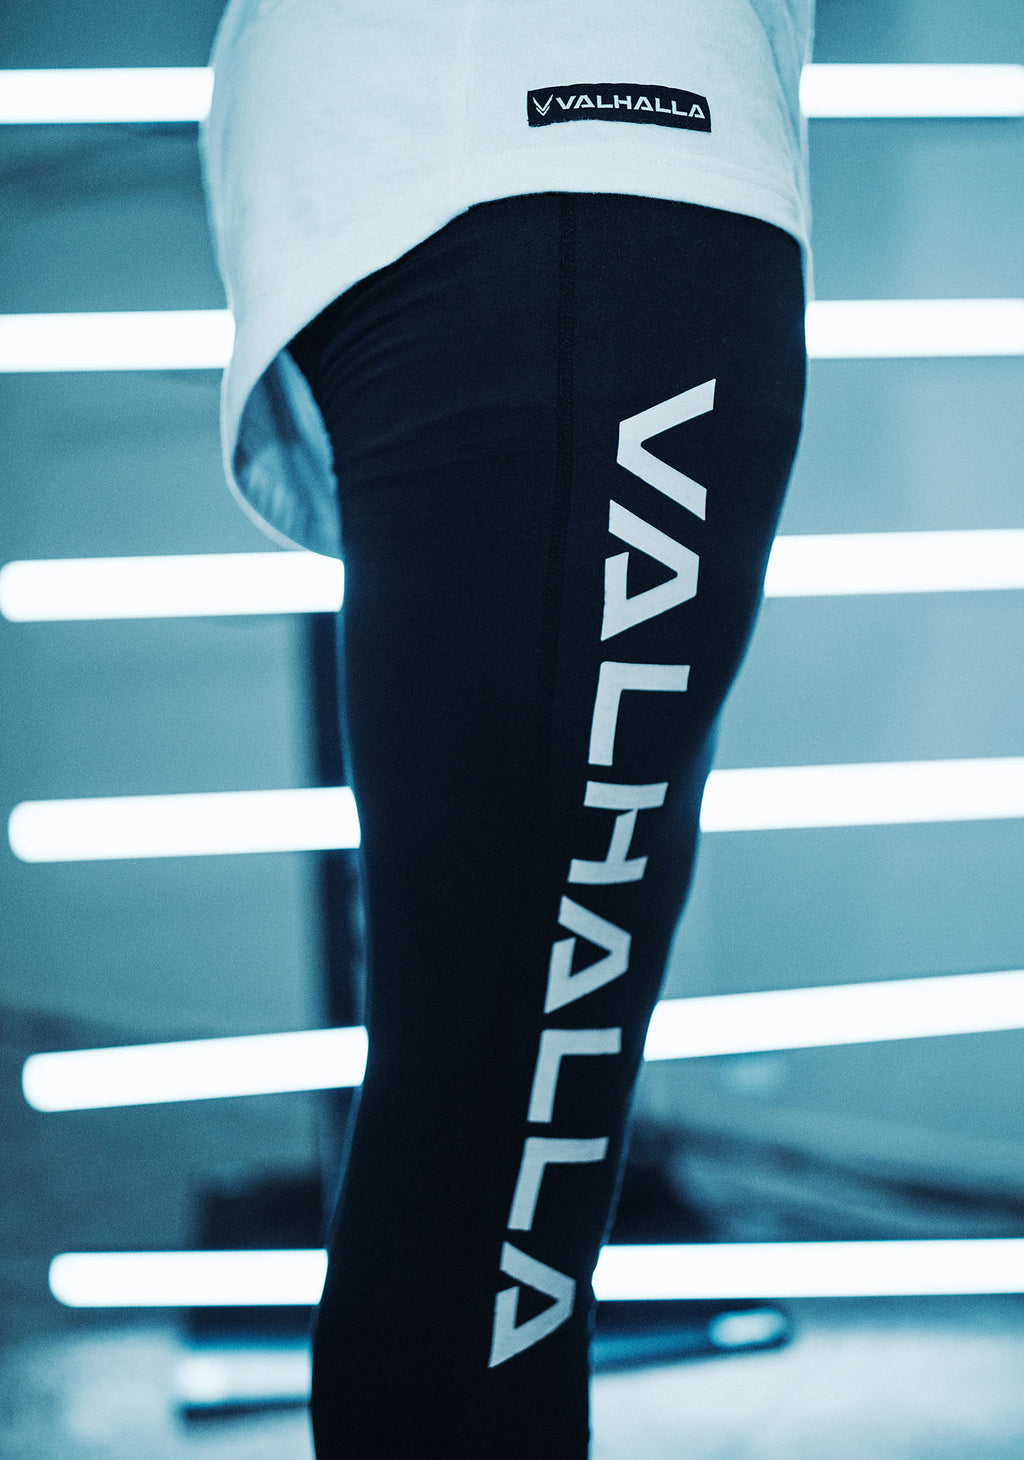 V Sport Valhalla Tights